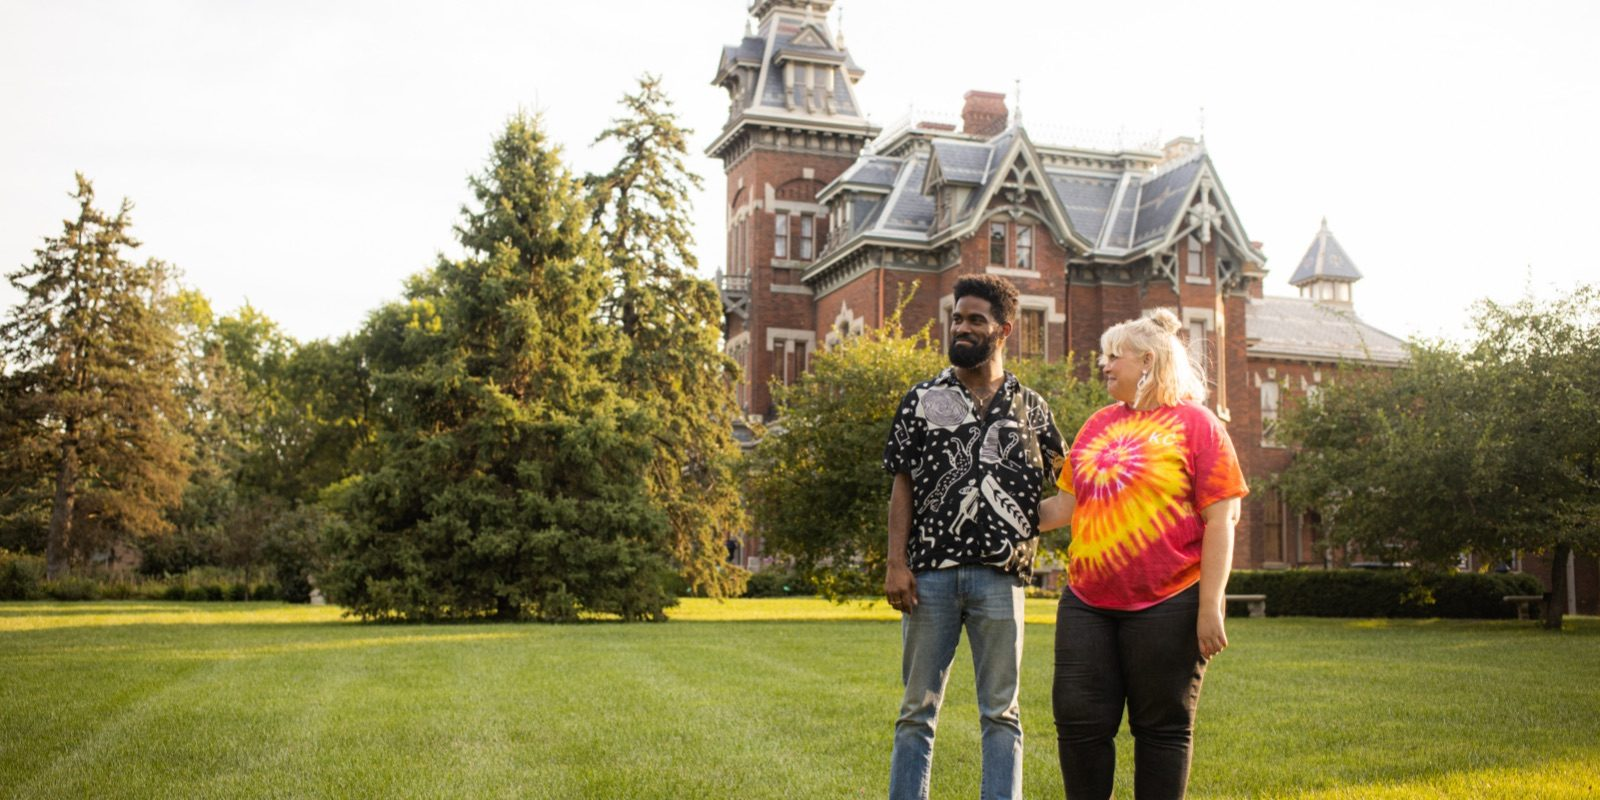 Influencer Jon Marzette and his girlfriend, Ann, on the grounds of the Vaile Mansion in Independence, MO